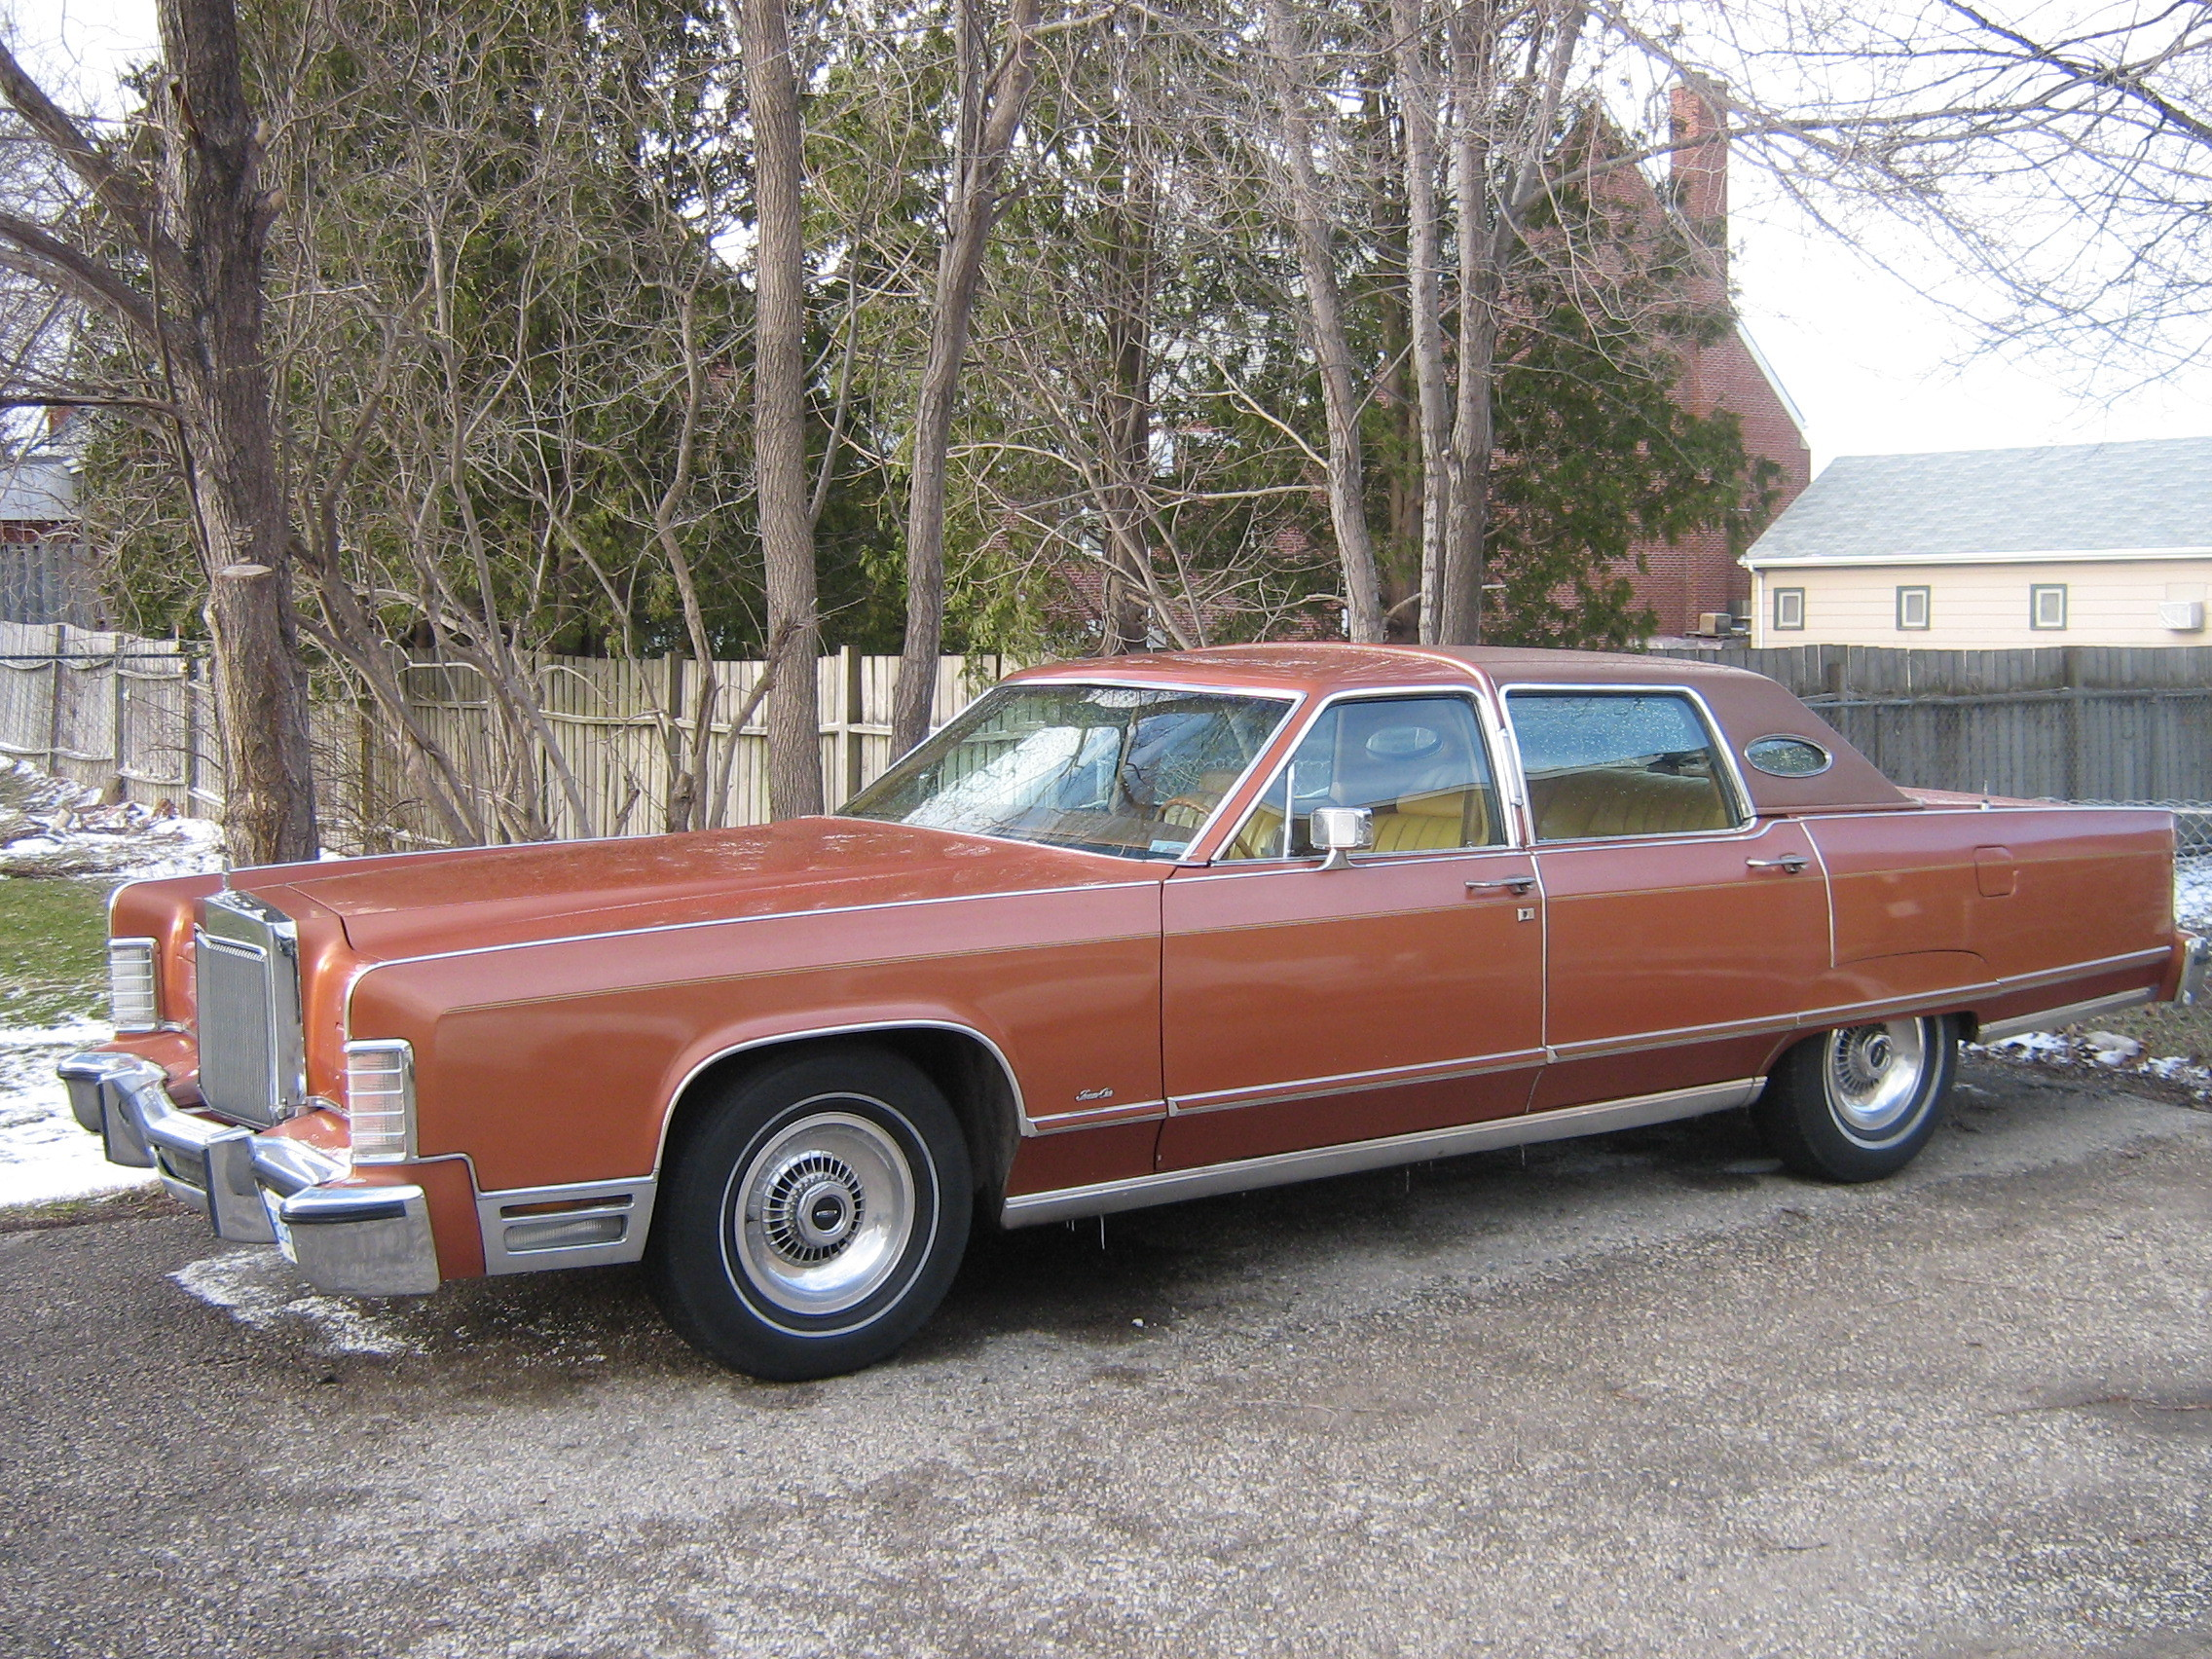 One_Fast_Omni 1977 Lincoln Continental 12919889